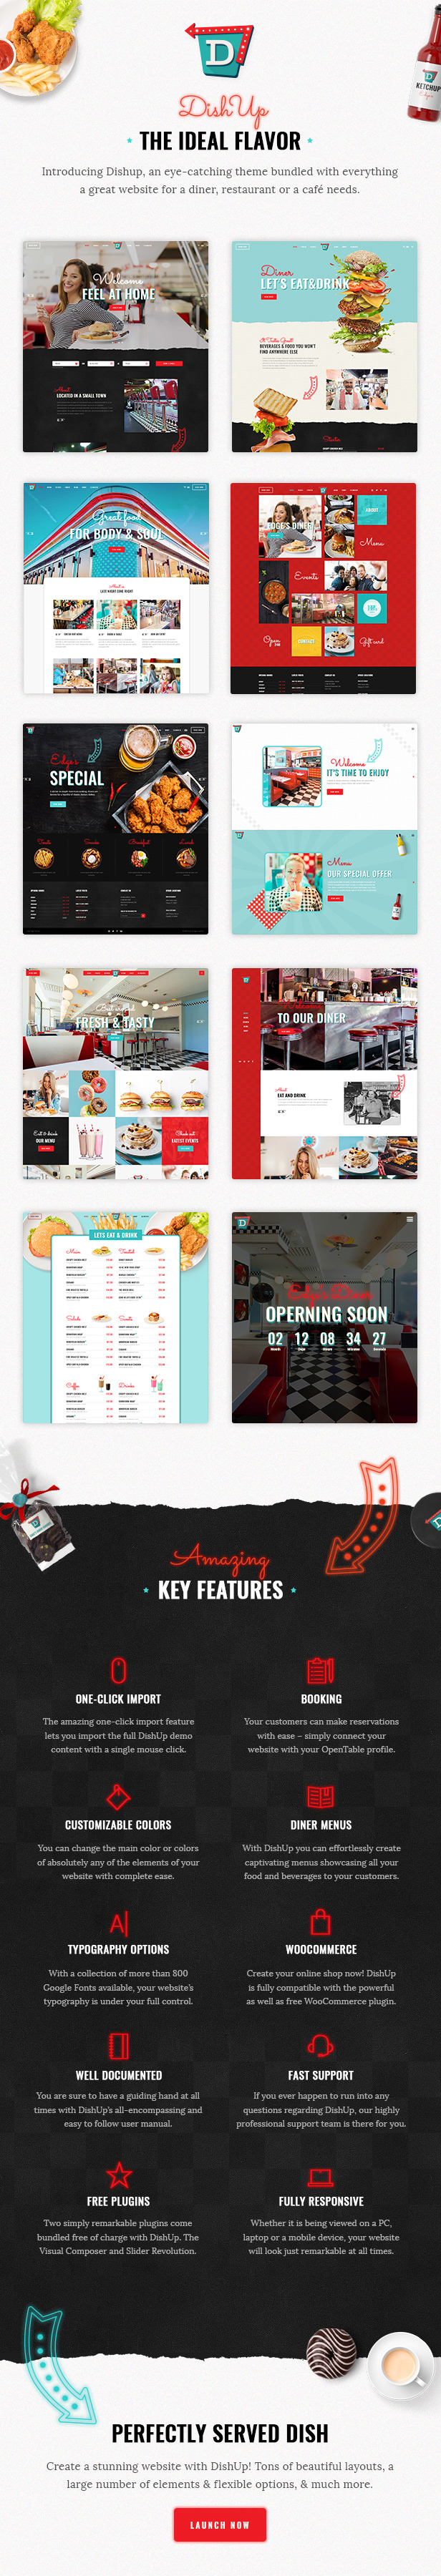 Step Up Your Restaurant With Dishup This Remarkable Theme Will Help You Build A Delicious Website For Fast Food Café Diner And So